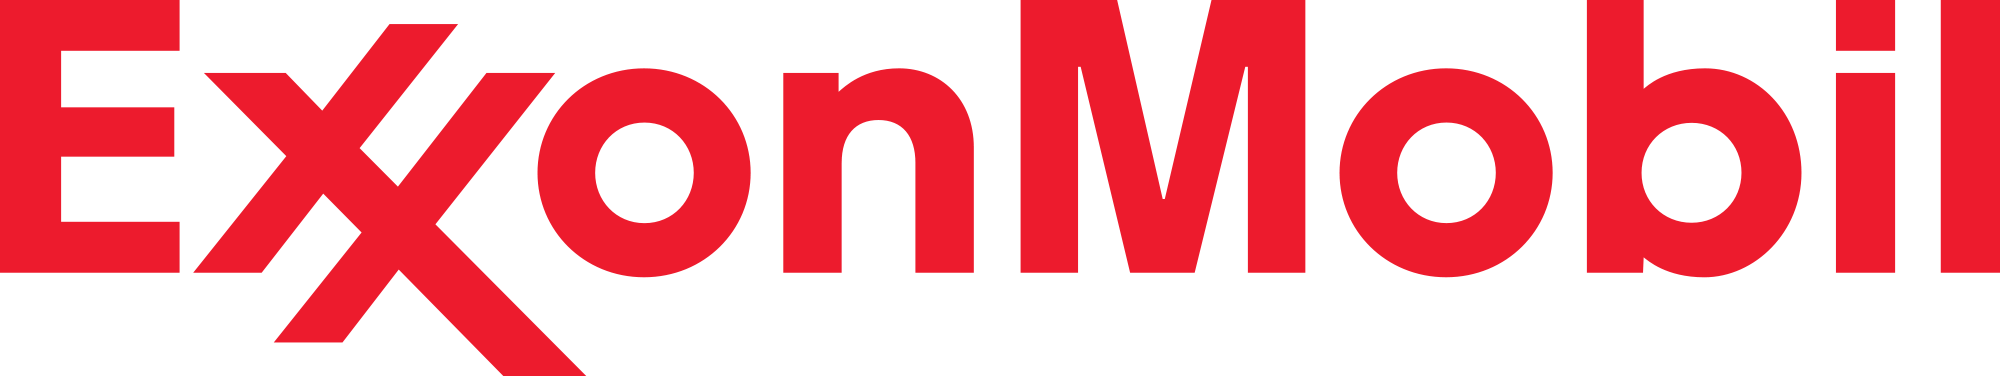 Exxon Mobil (XOM) Stock | Effects Of A Crashing Commodity